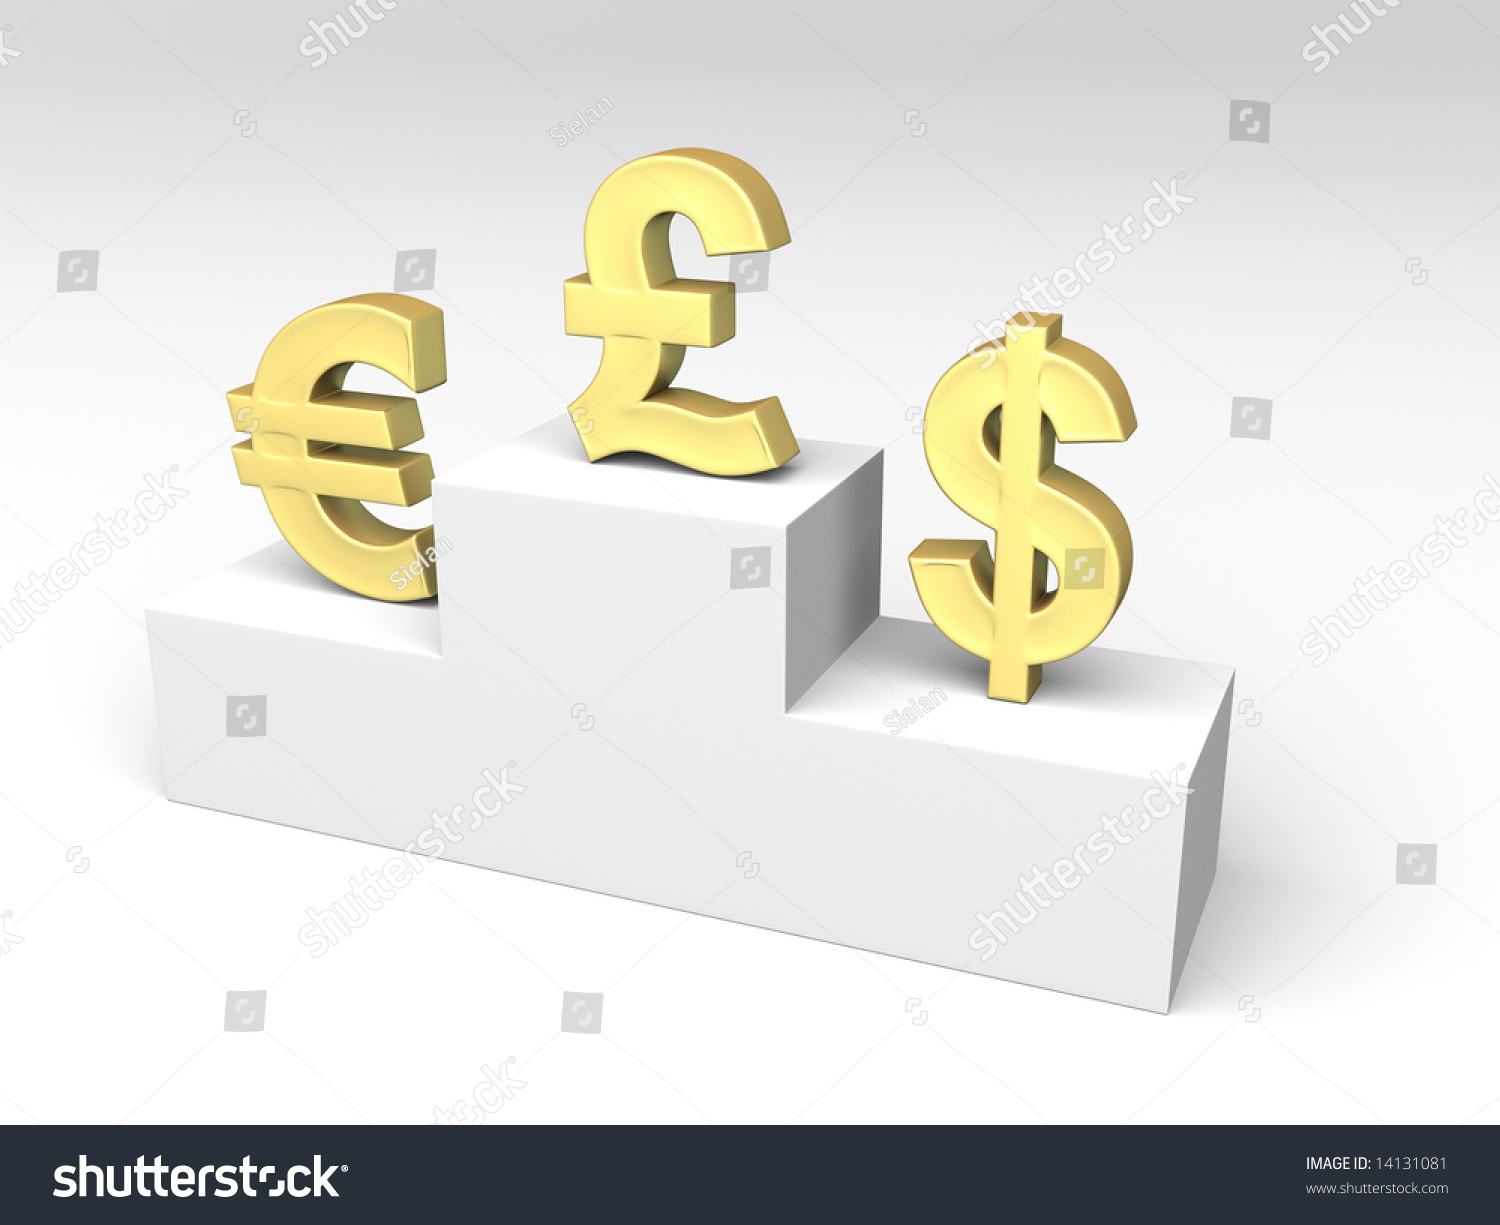 Currencies exchange rates shown by some stock illustration currencies exchange rates shown by some currency symbols standing on a podium biocorpaavc